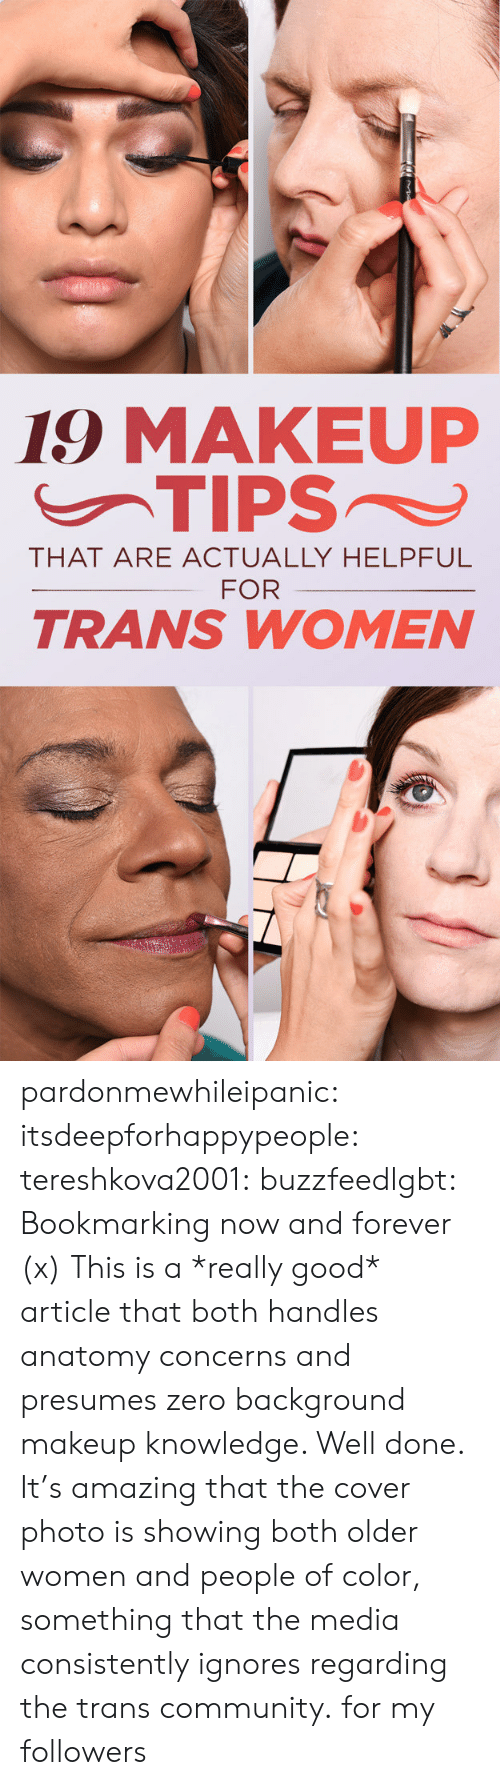 Community, Lgbt, and Makeup: 19 MAKEUP  THAT ARE ACTUALLY HELPFUL  FOR  TRANS WOMEN pardonmewhileipanic:  itsdeepforhappypeople:  tereshkova2001:  buzzfeedlgbt:  Bookmarking now and forever (x)  This is a *really good* article that both handles anatomy concerns and presumes zero background makeup knowledge. Well done.  It's amazing that the cover photo is showing both older women and people of color, something that the media consistently ignores regarding the trans community.  for my followers